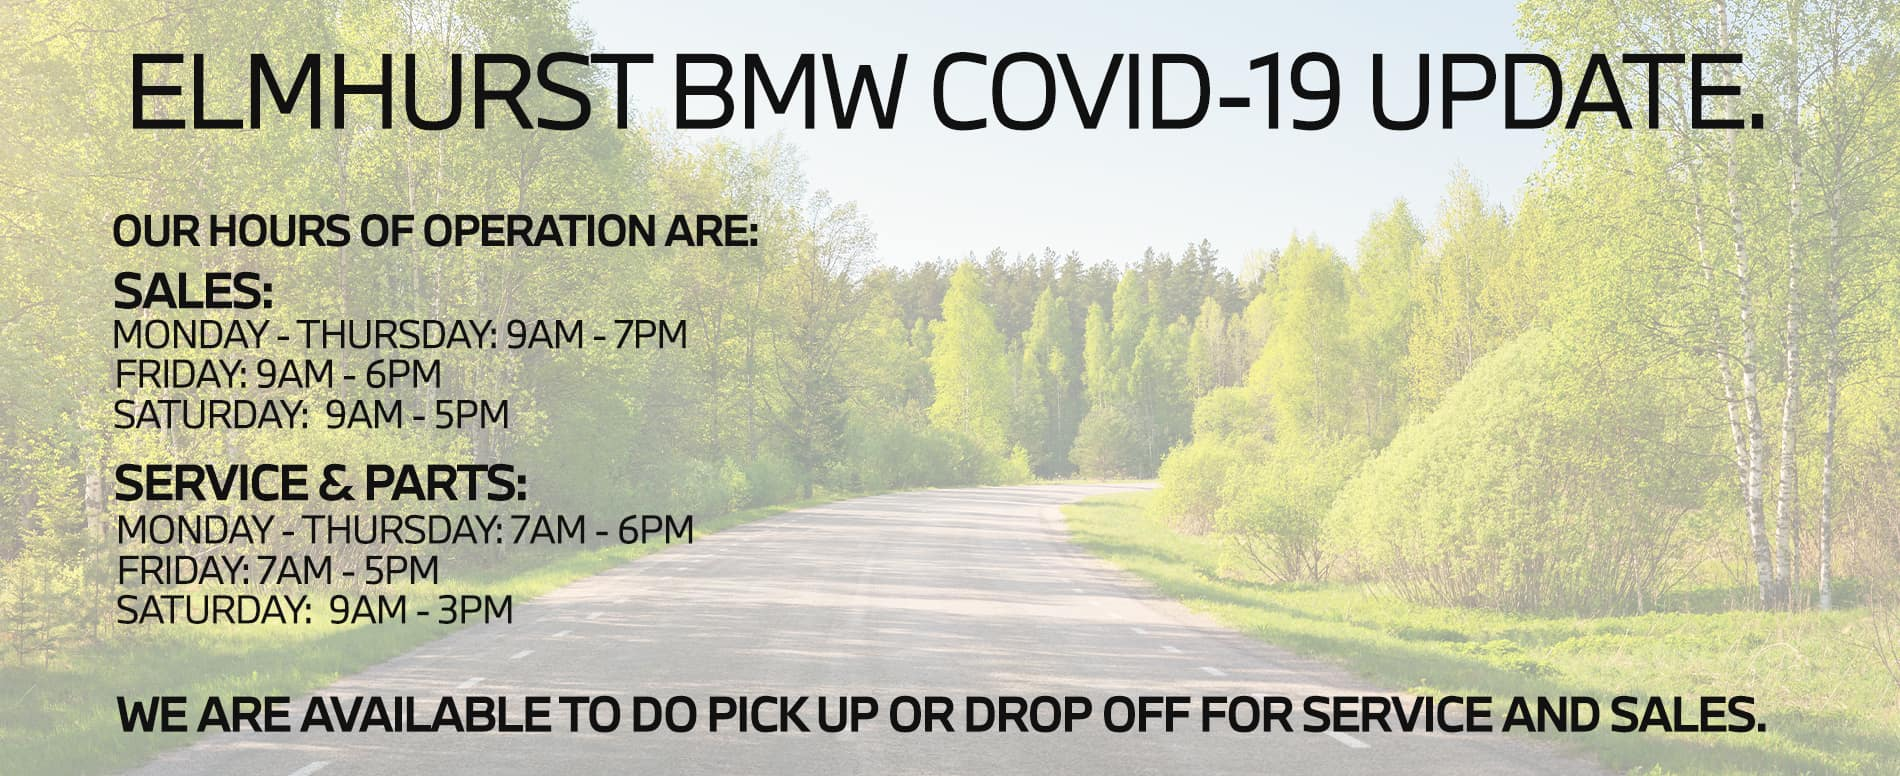 Covid-19 Updated Hours Homepage Slide. Also available for pick up and drop off. Background of a road with trees along both sides.